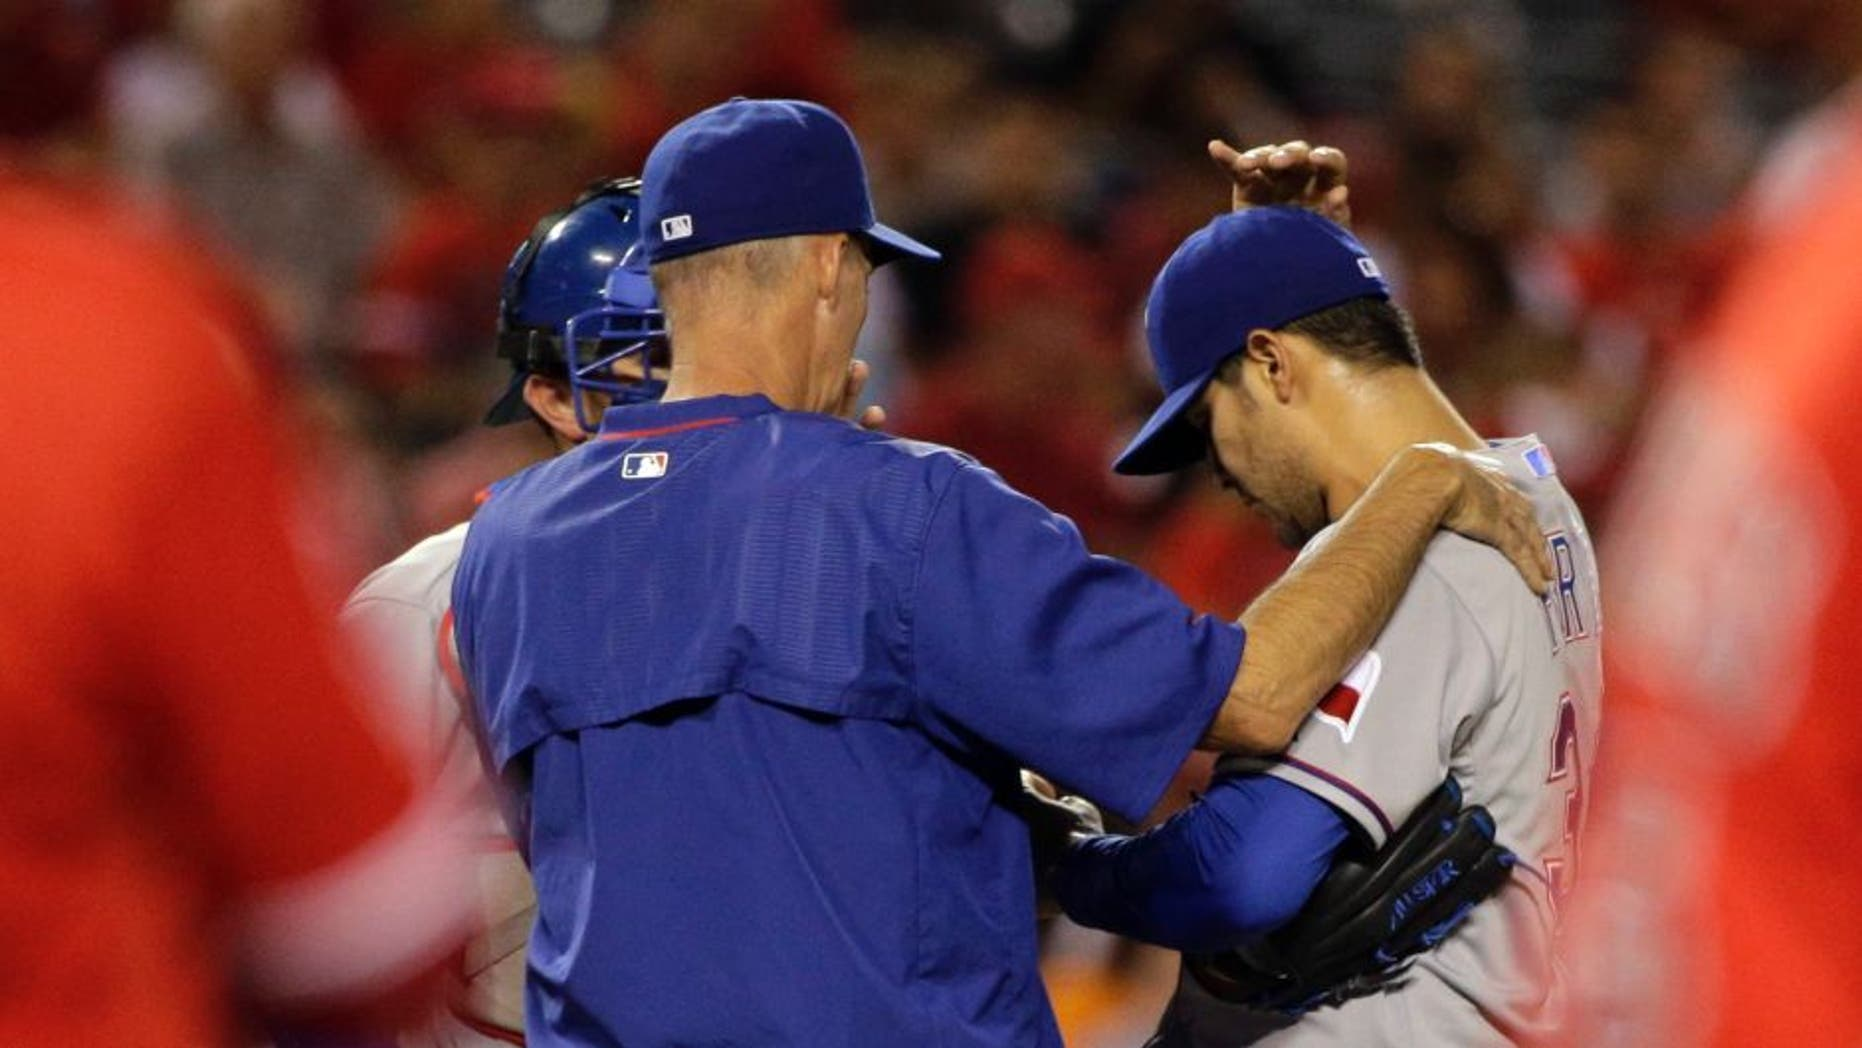 Texas Rangers pitching coach Mike Maddux, center, confers with starting pitcher Martin Perez, center right, and catcher Bobby Wilson after Perez walked Los Angeles Angels' Albert Pujols, foreground right, during the third inning of a baseball game, Friday, Sept. 4, 2015, in Anaheim, Calif. (AP Photo/Jae C. Hong)